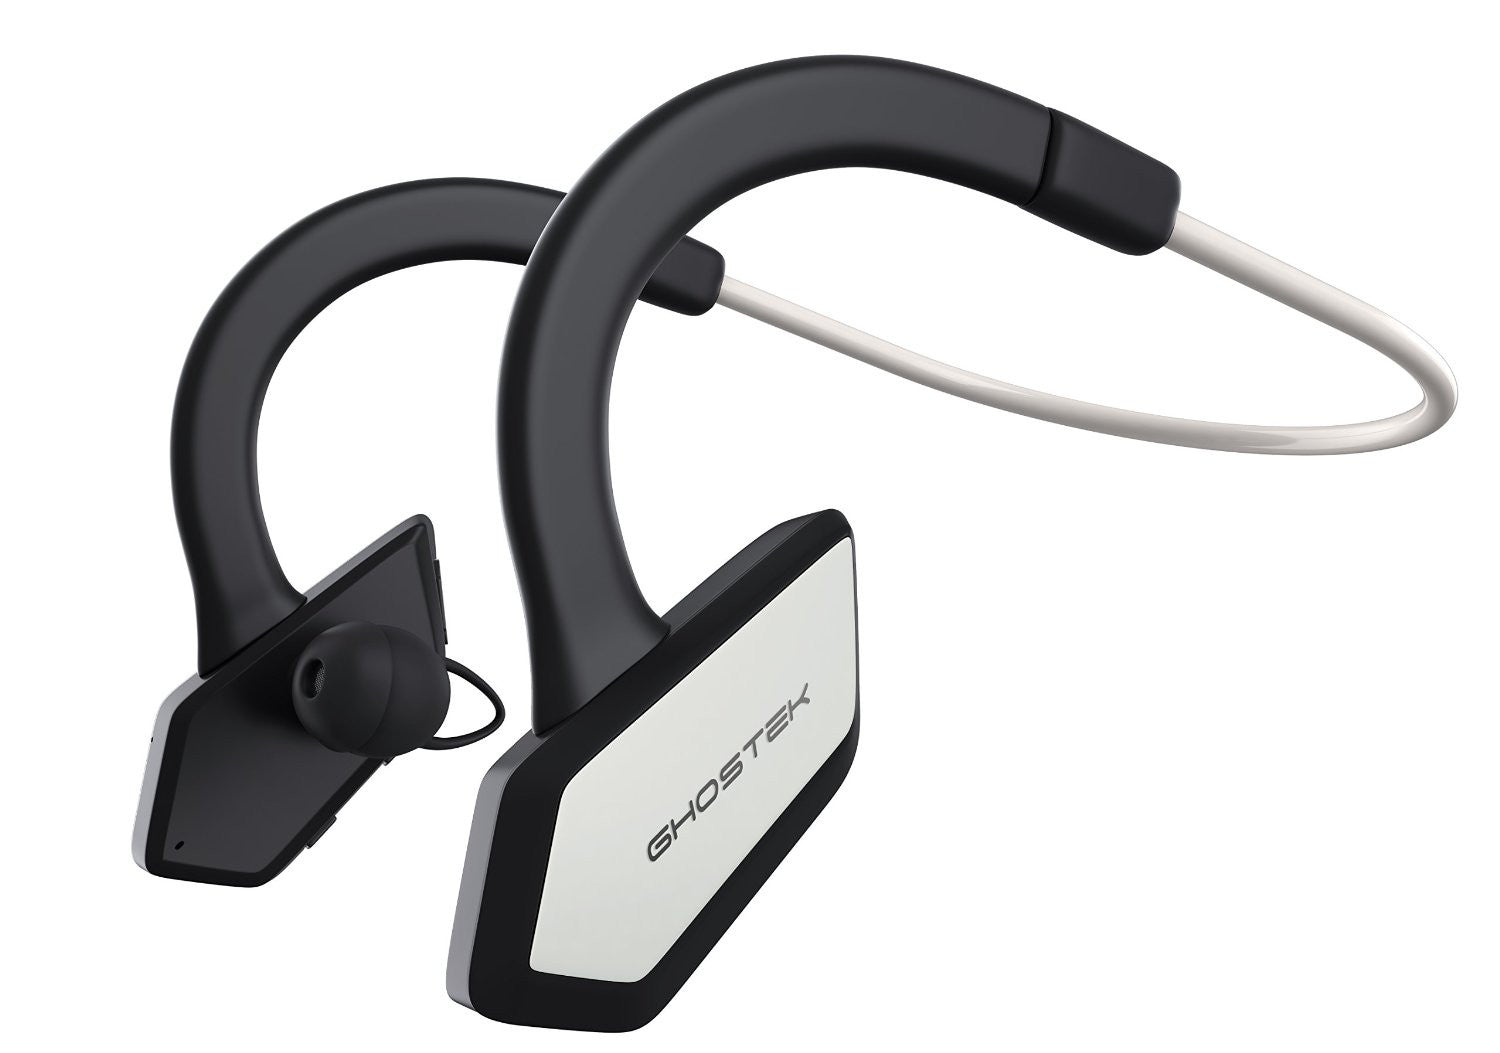 Headphones Bluetooth Ghostek Earblades White/Black Sweatproof Bluetooth4.1 Headphones WaterResistant